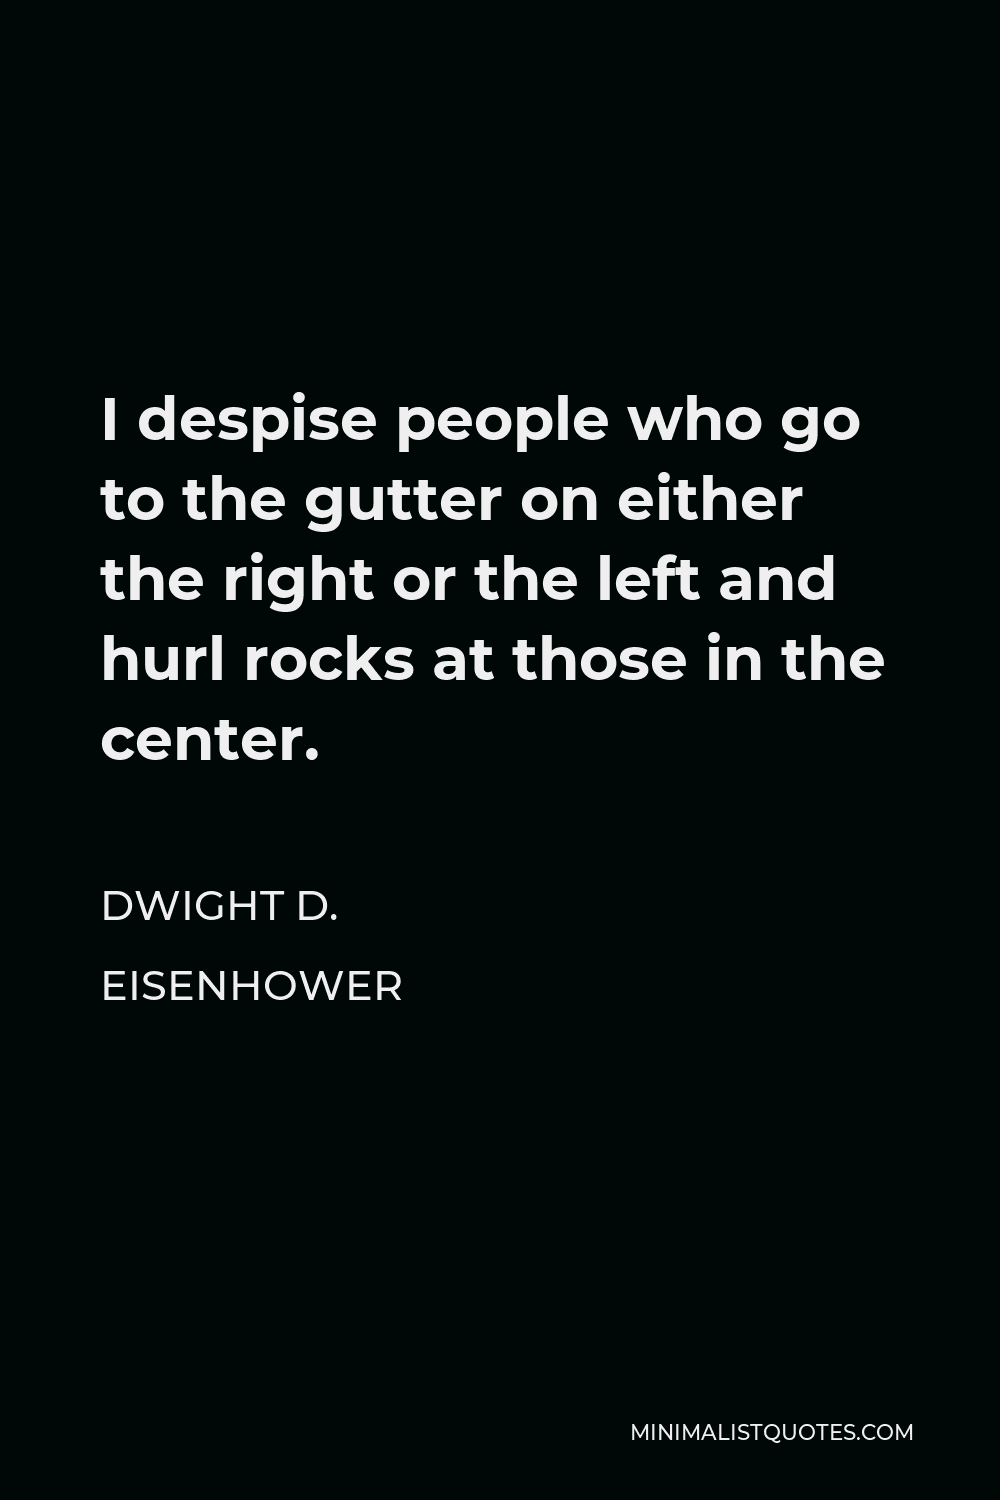 Dwight D. Eisenhower Quote - I despise people who go to the gutter on either the right or the left and hurl rocks at those in the center.